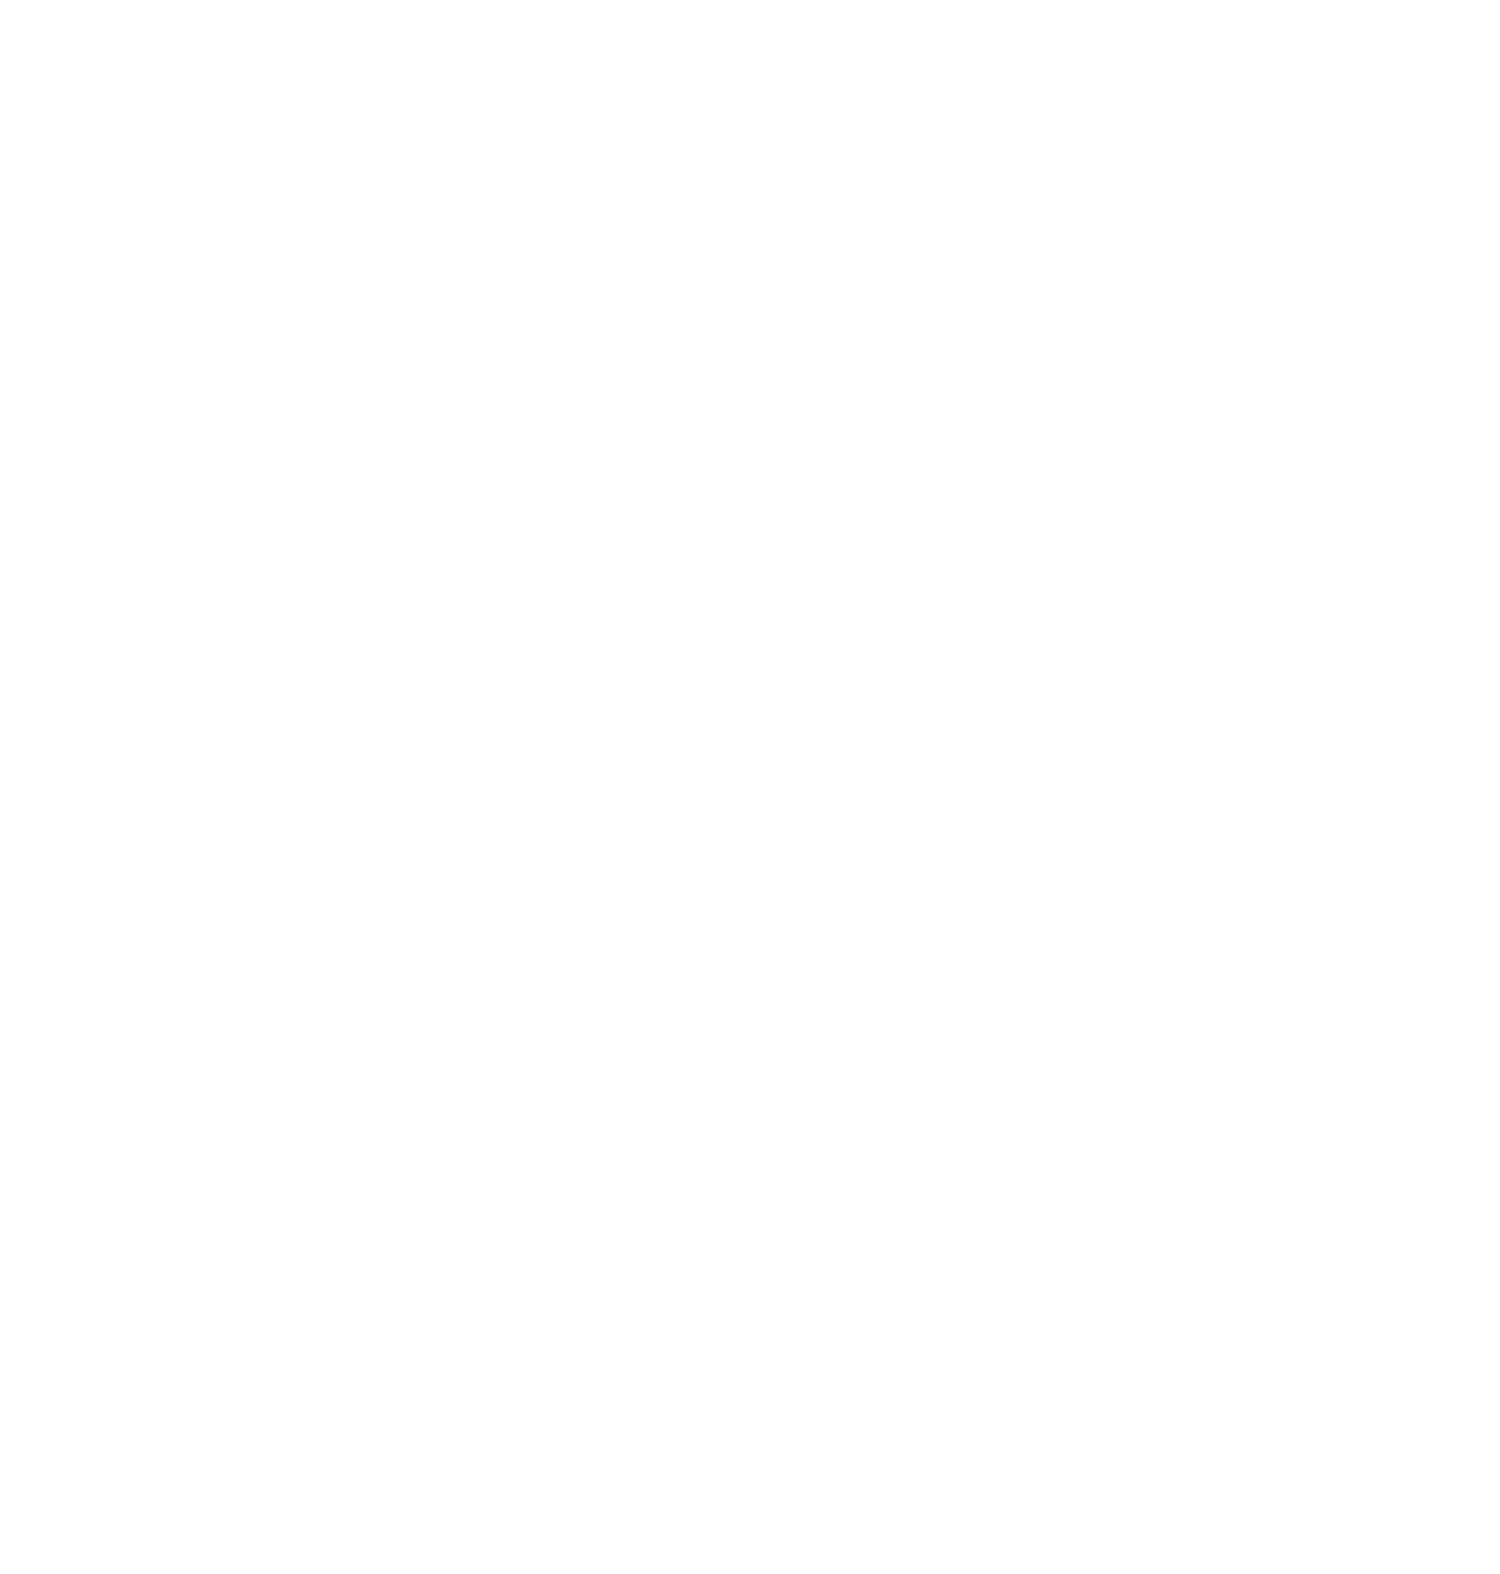 Knight Wellness & Therapy, LLC